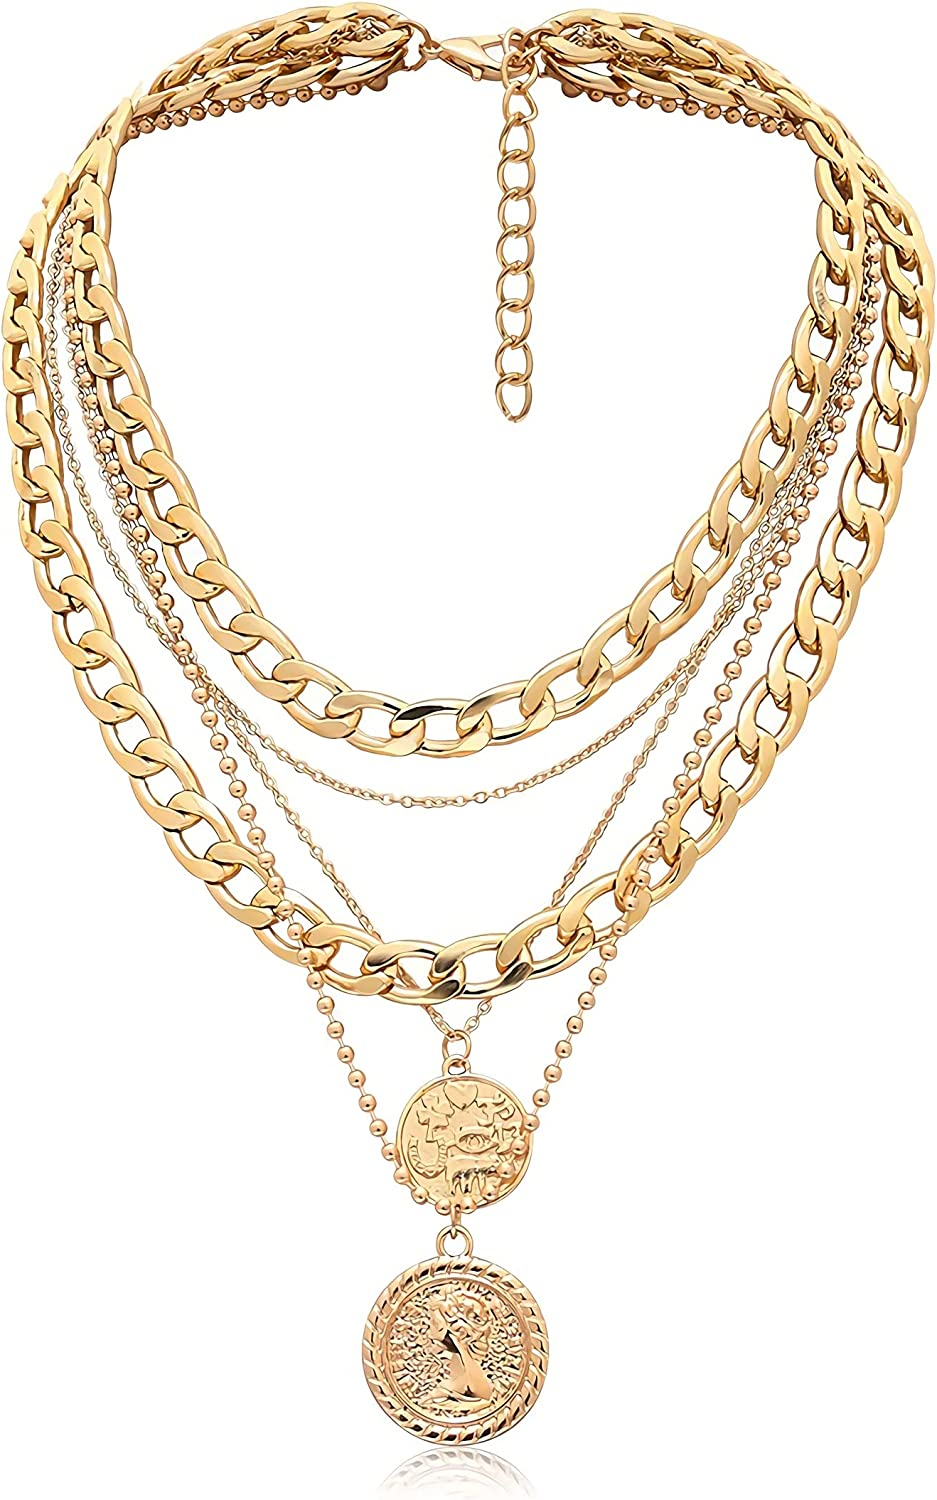 Dainty Disc Chokers Necklace Set Layered Circle Necklace Bar Y Pendant Necklace Necklace for Women